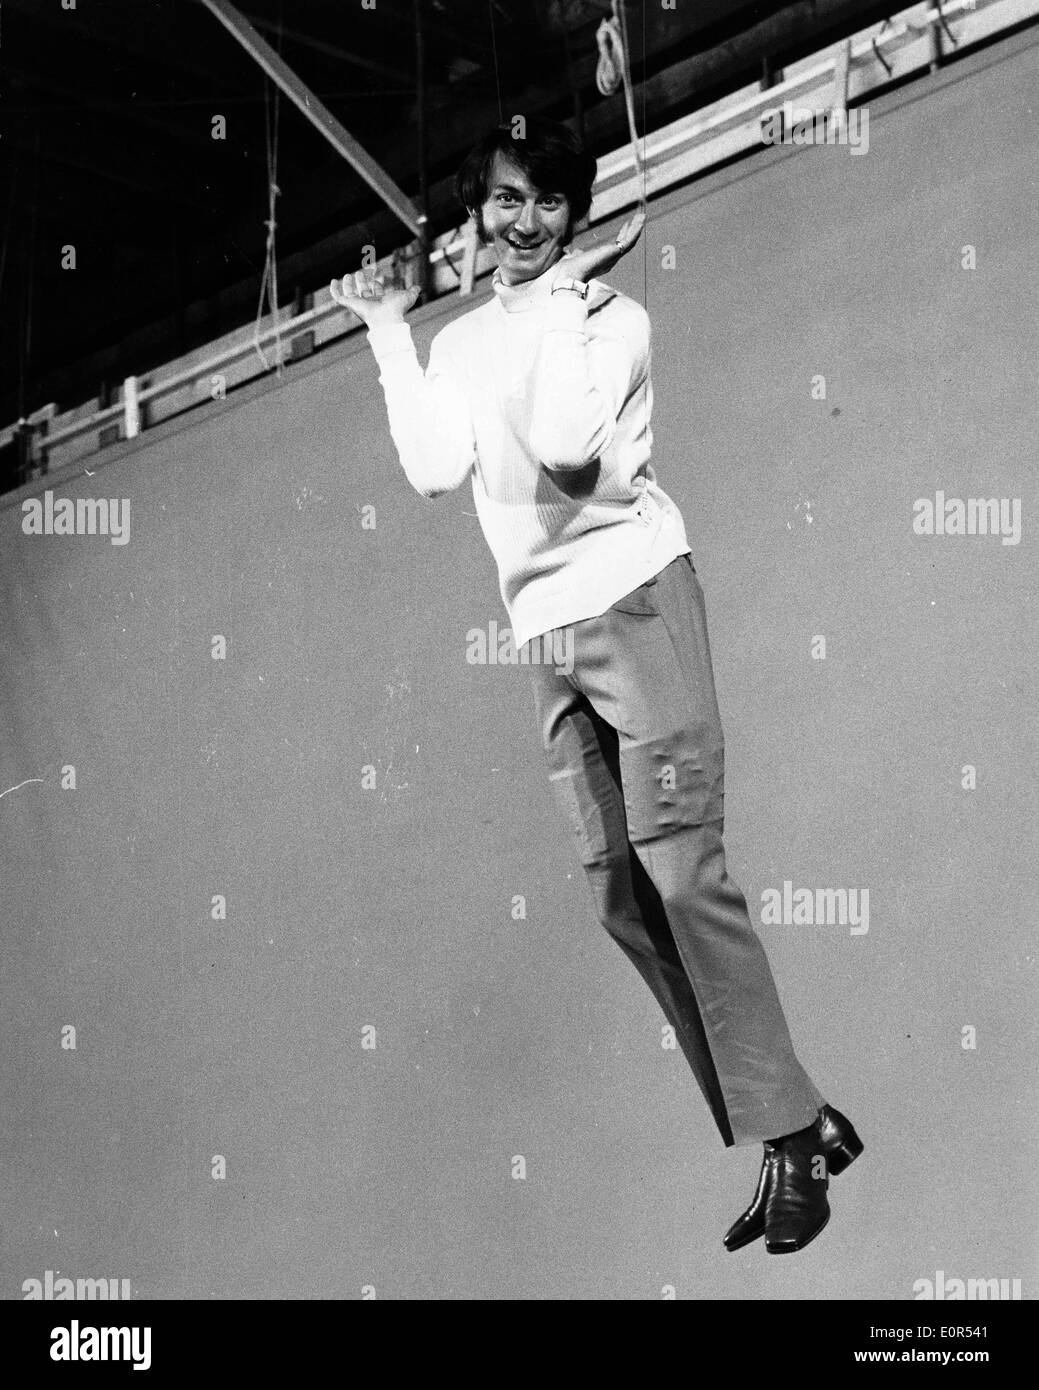 Singer Mike Nesmith swinging in a scene from a new Monkees' film - Stock Image